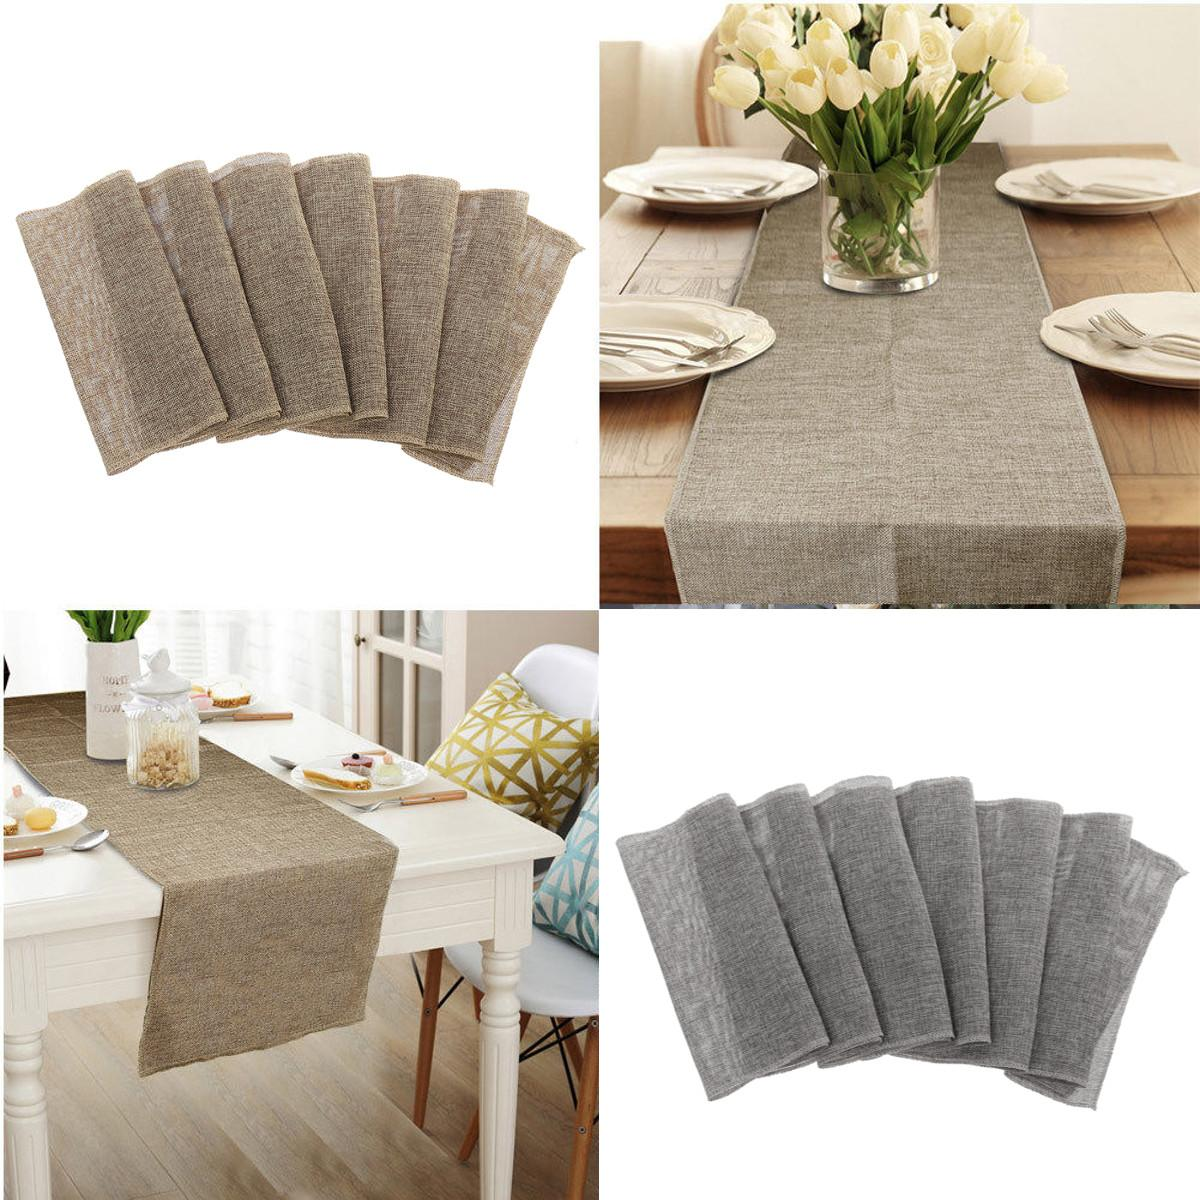 Jute Imitated Linen Table Runner Rustic Christmas Day Party Wedding Decoration Home Table Cloth